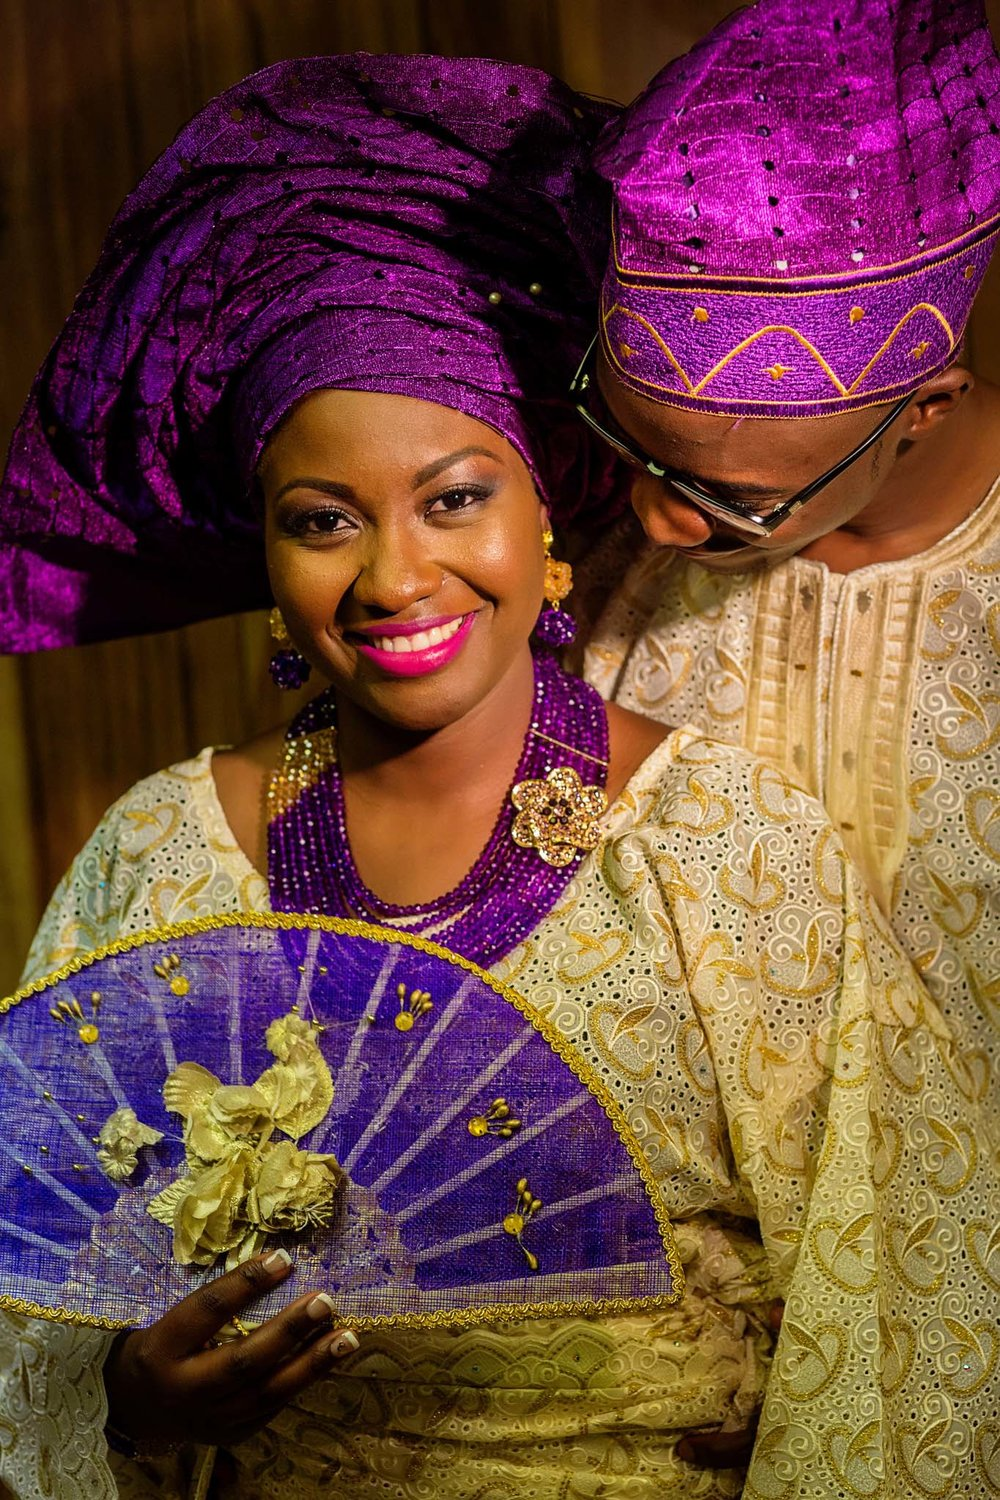 For-FacebookAndWebsites-Yewande-Lolu-Traditional-Wedding-Winston-Salem-Clemmons-NC-Yoruba-Nigerian-Kumolu-Studios-588.jpg